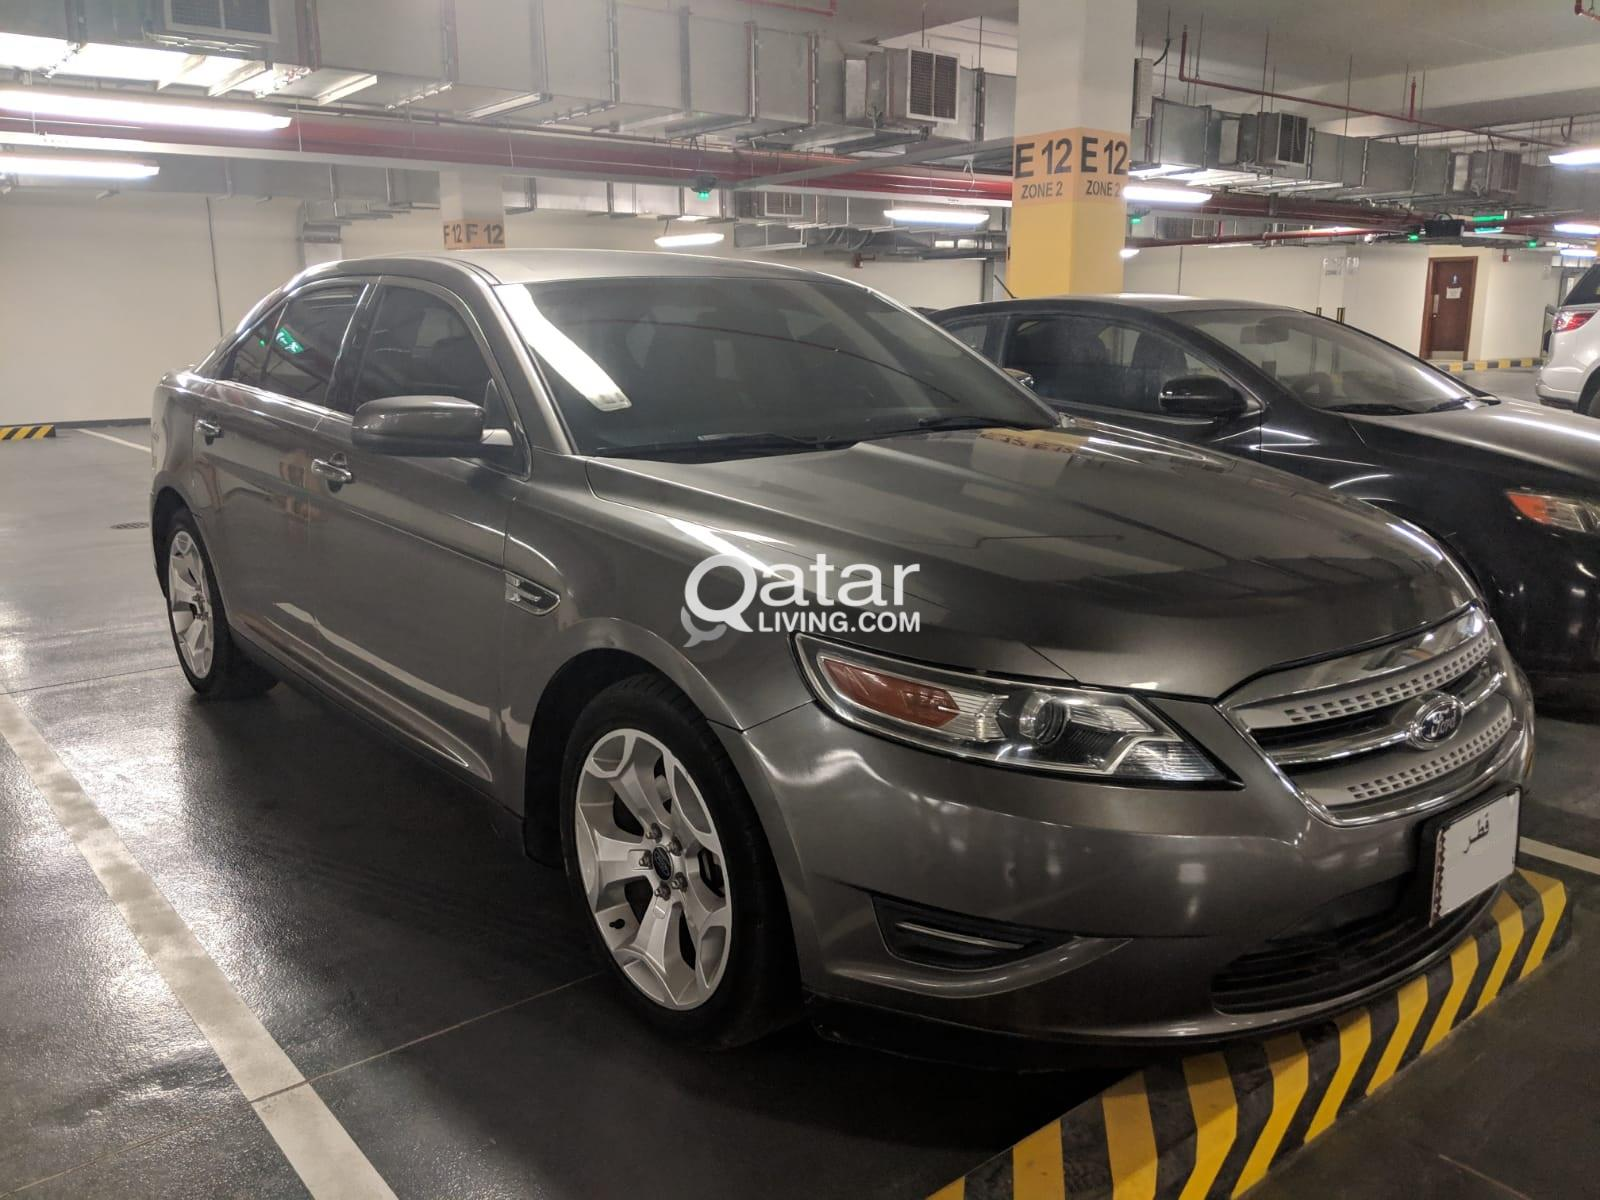 Urgent Sale Immaculate Condition 2013 Ford Taurus SEL (35500 Qrs) 3.5 V6